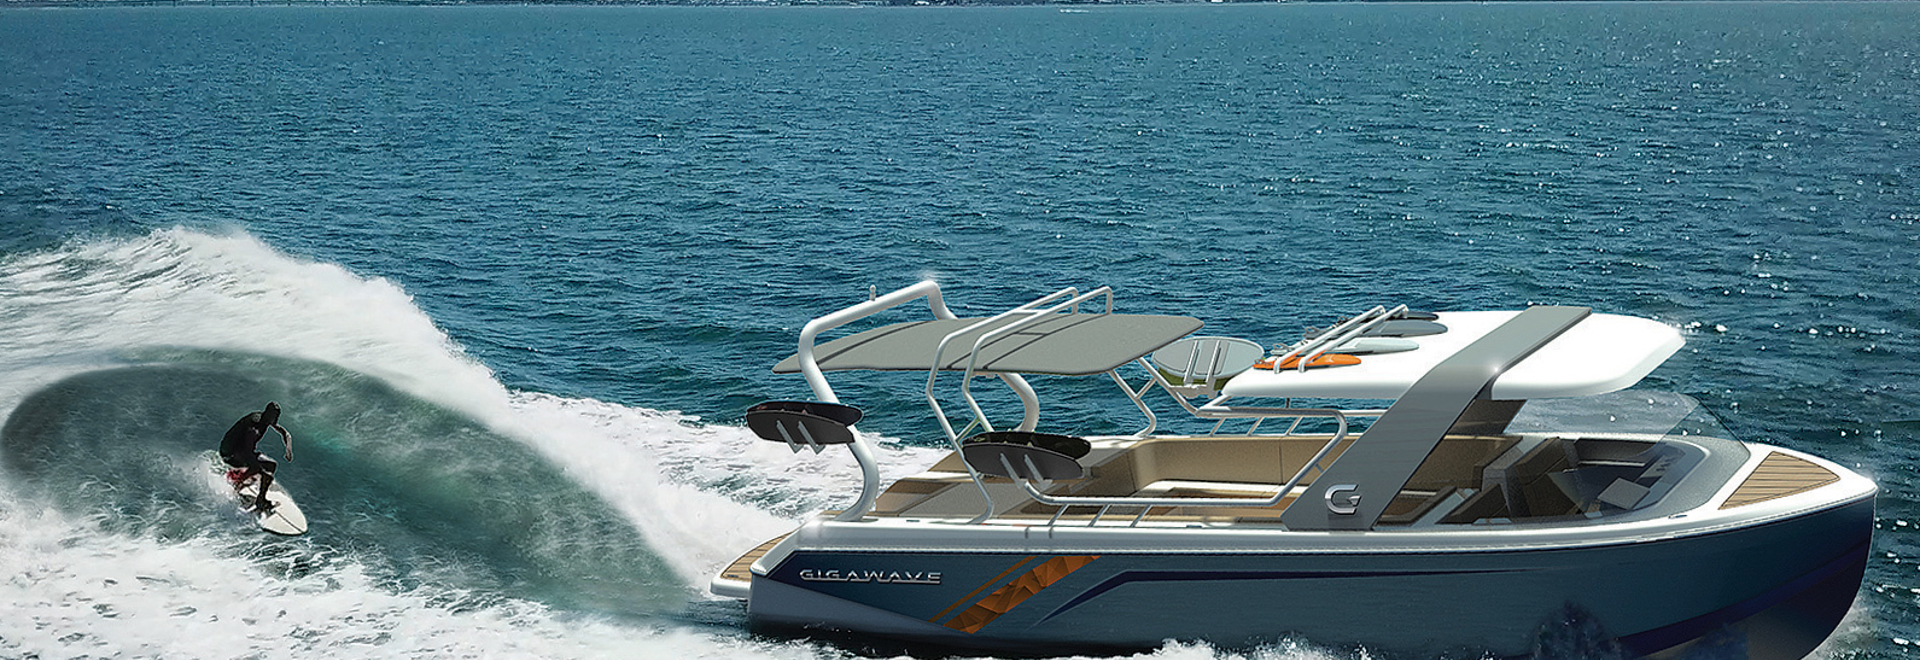 Surf's up with Gigawave's new concept boat